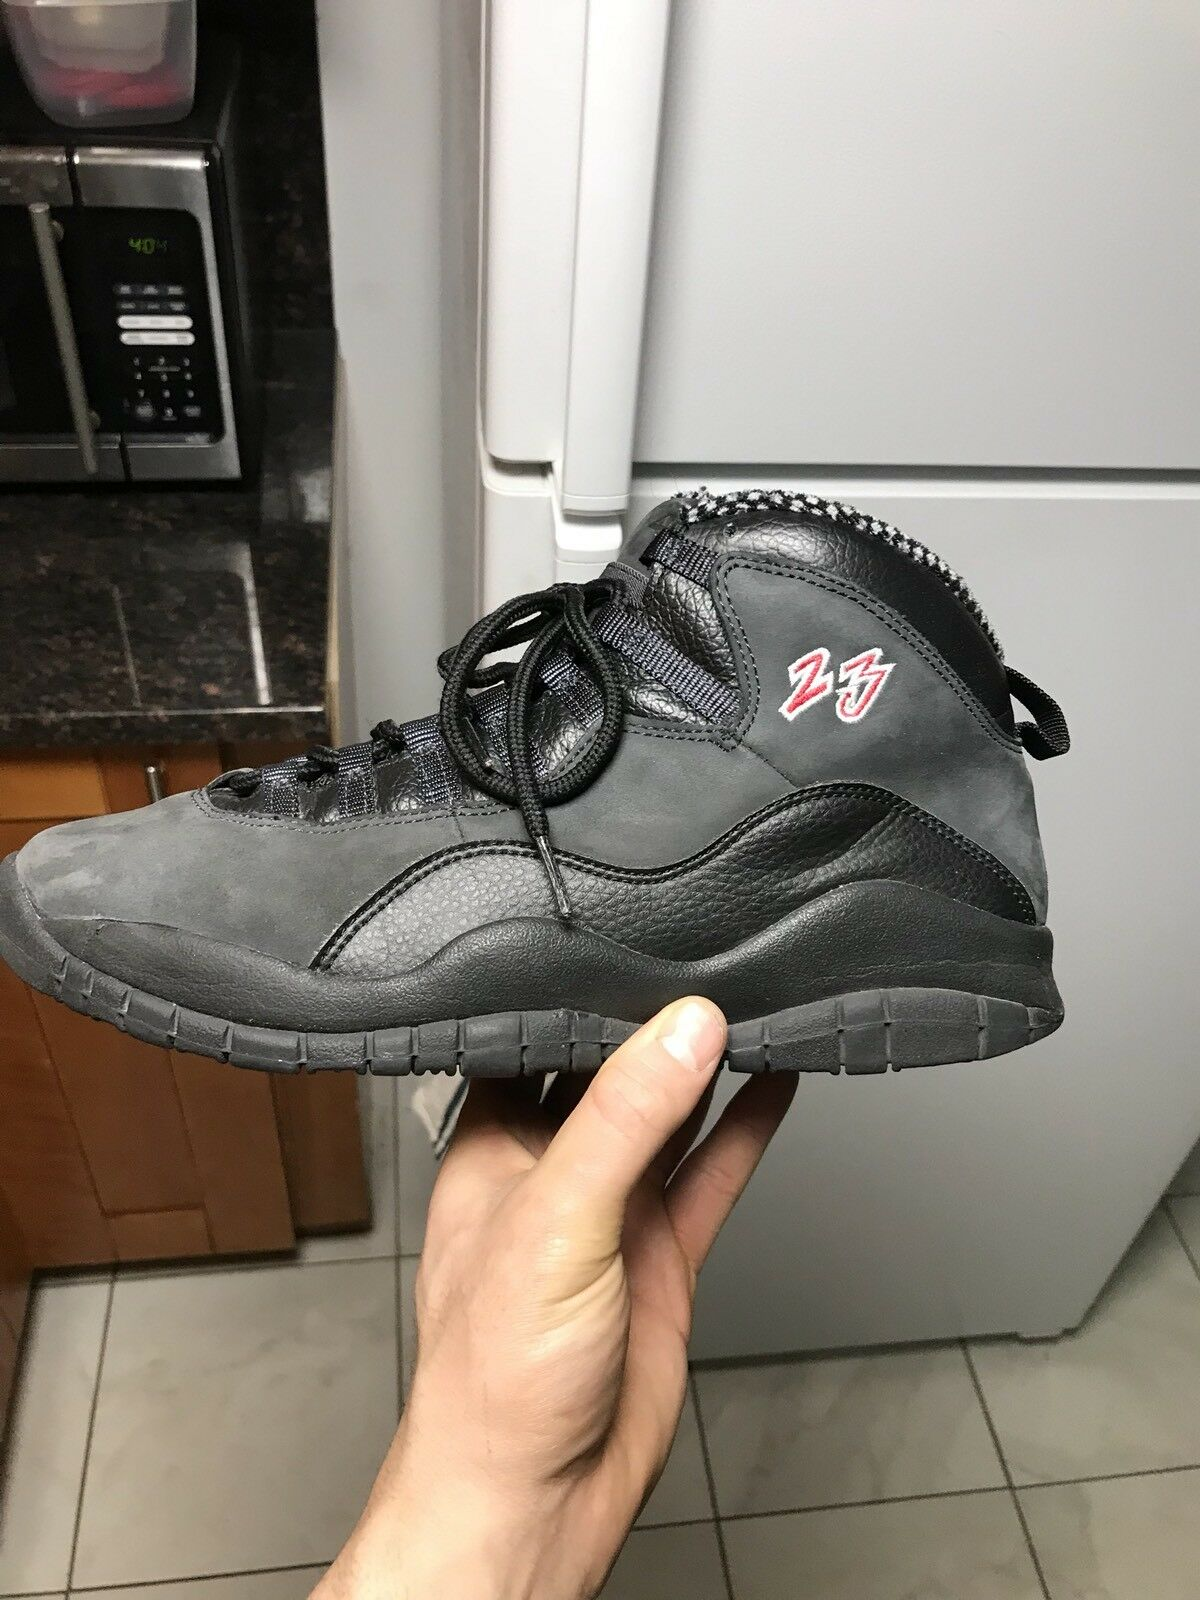 Jordan Retro 10 Shadow 9.5 Grey Black